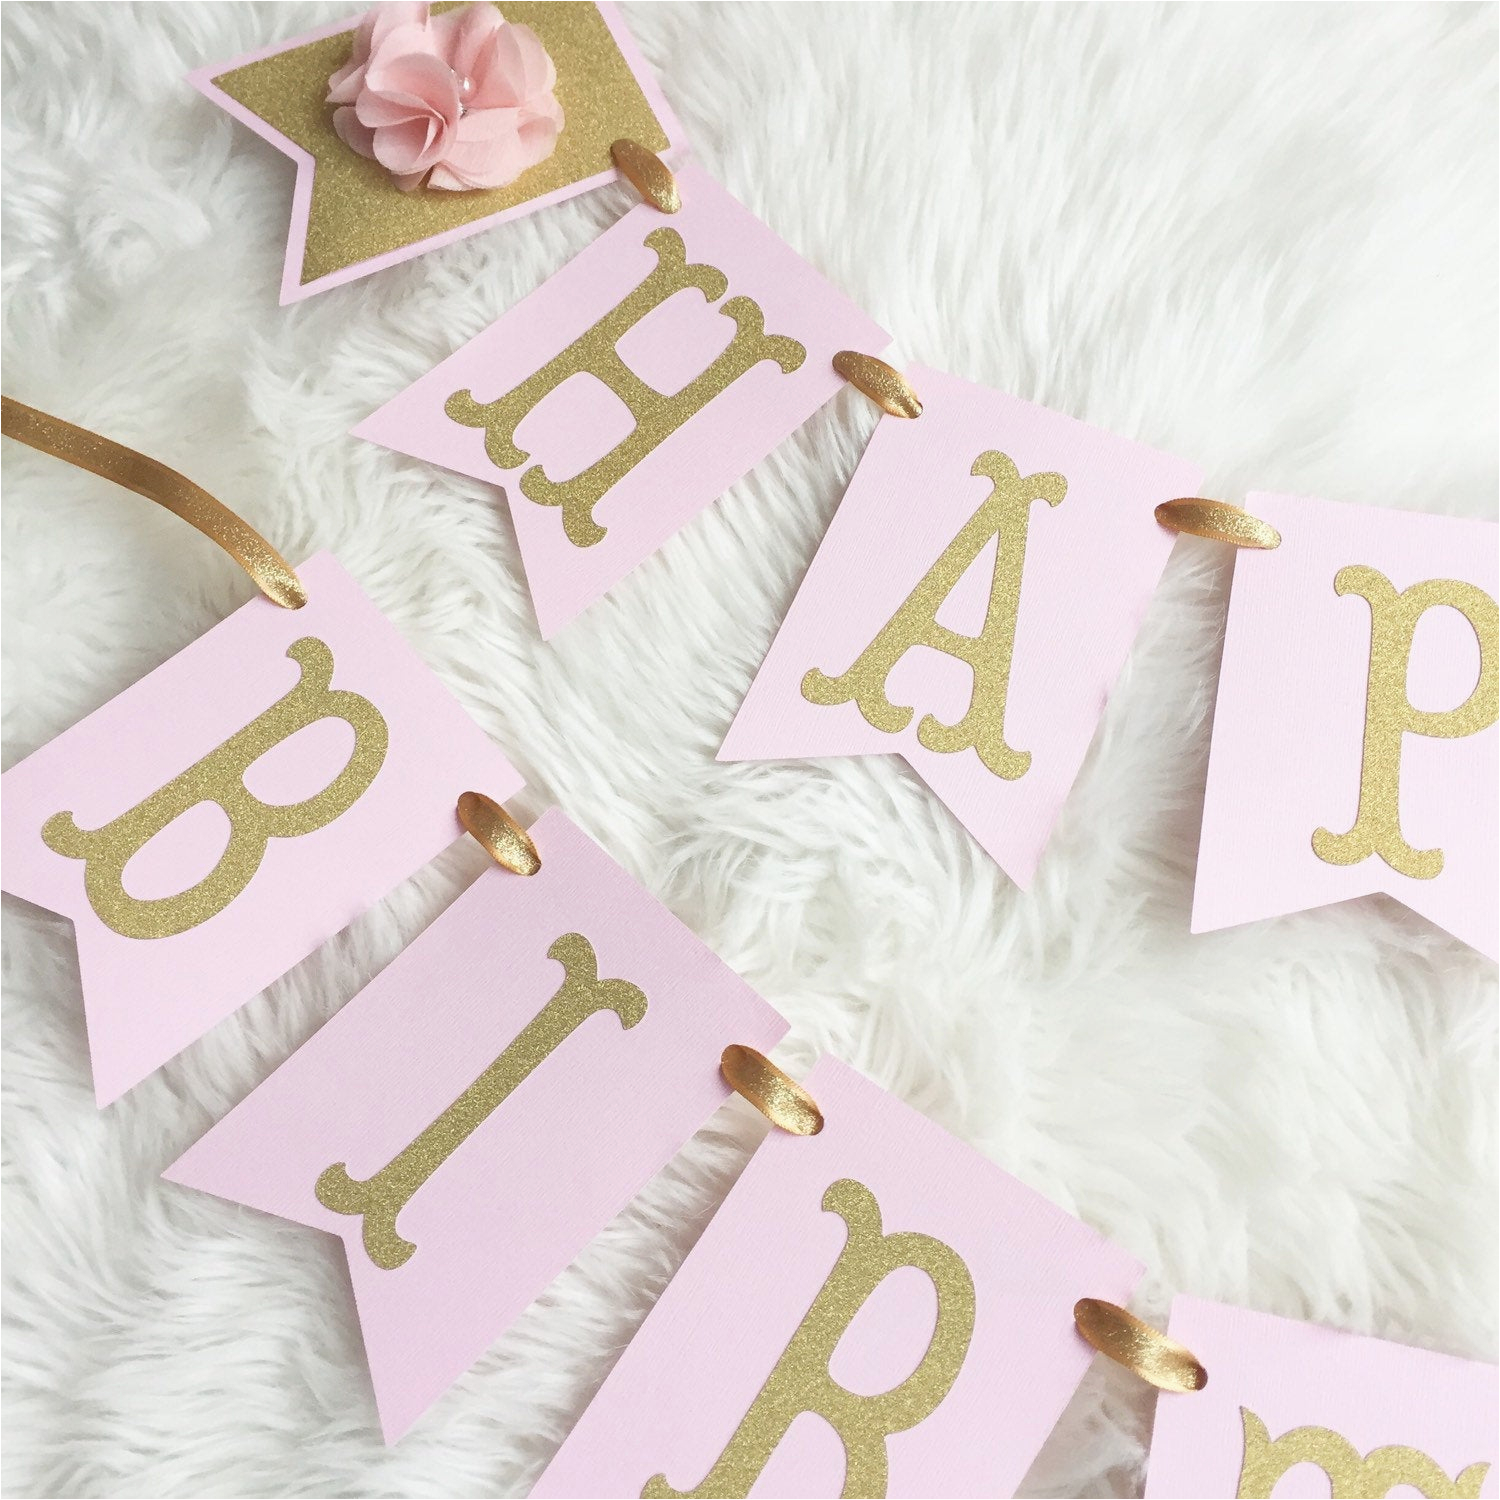 Happy 1st Birthday Banner Tesco Happy 1st Birthday Banner Pink and Gold by Sweetstoppartyshop